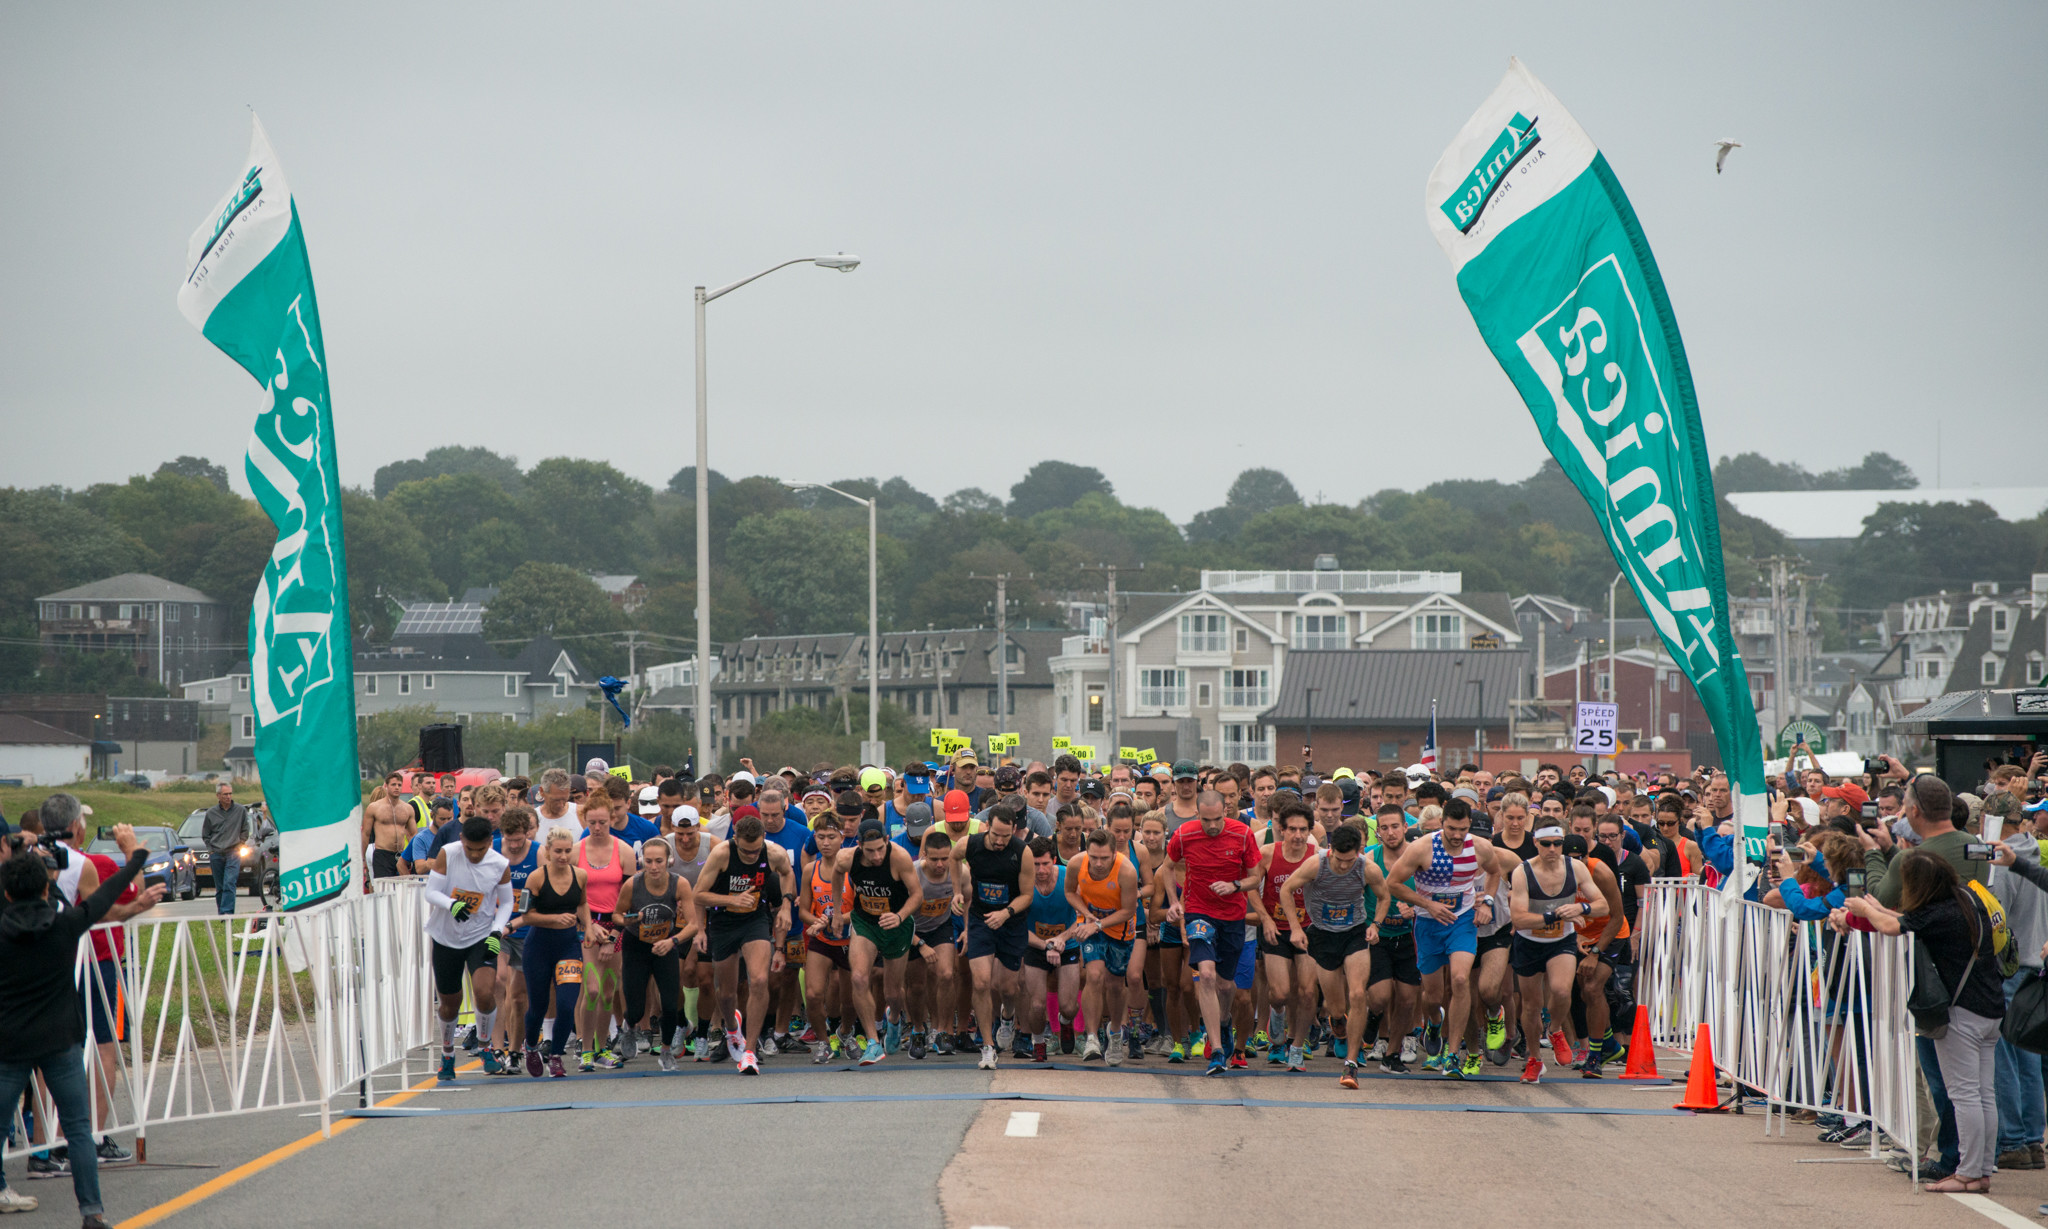 The Amica Newport Marathon, BankNewport 10 Miler, and Ocean Road 10K have all been named in the top 100 races in the USA by online racing resource Bib Raves